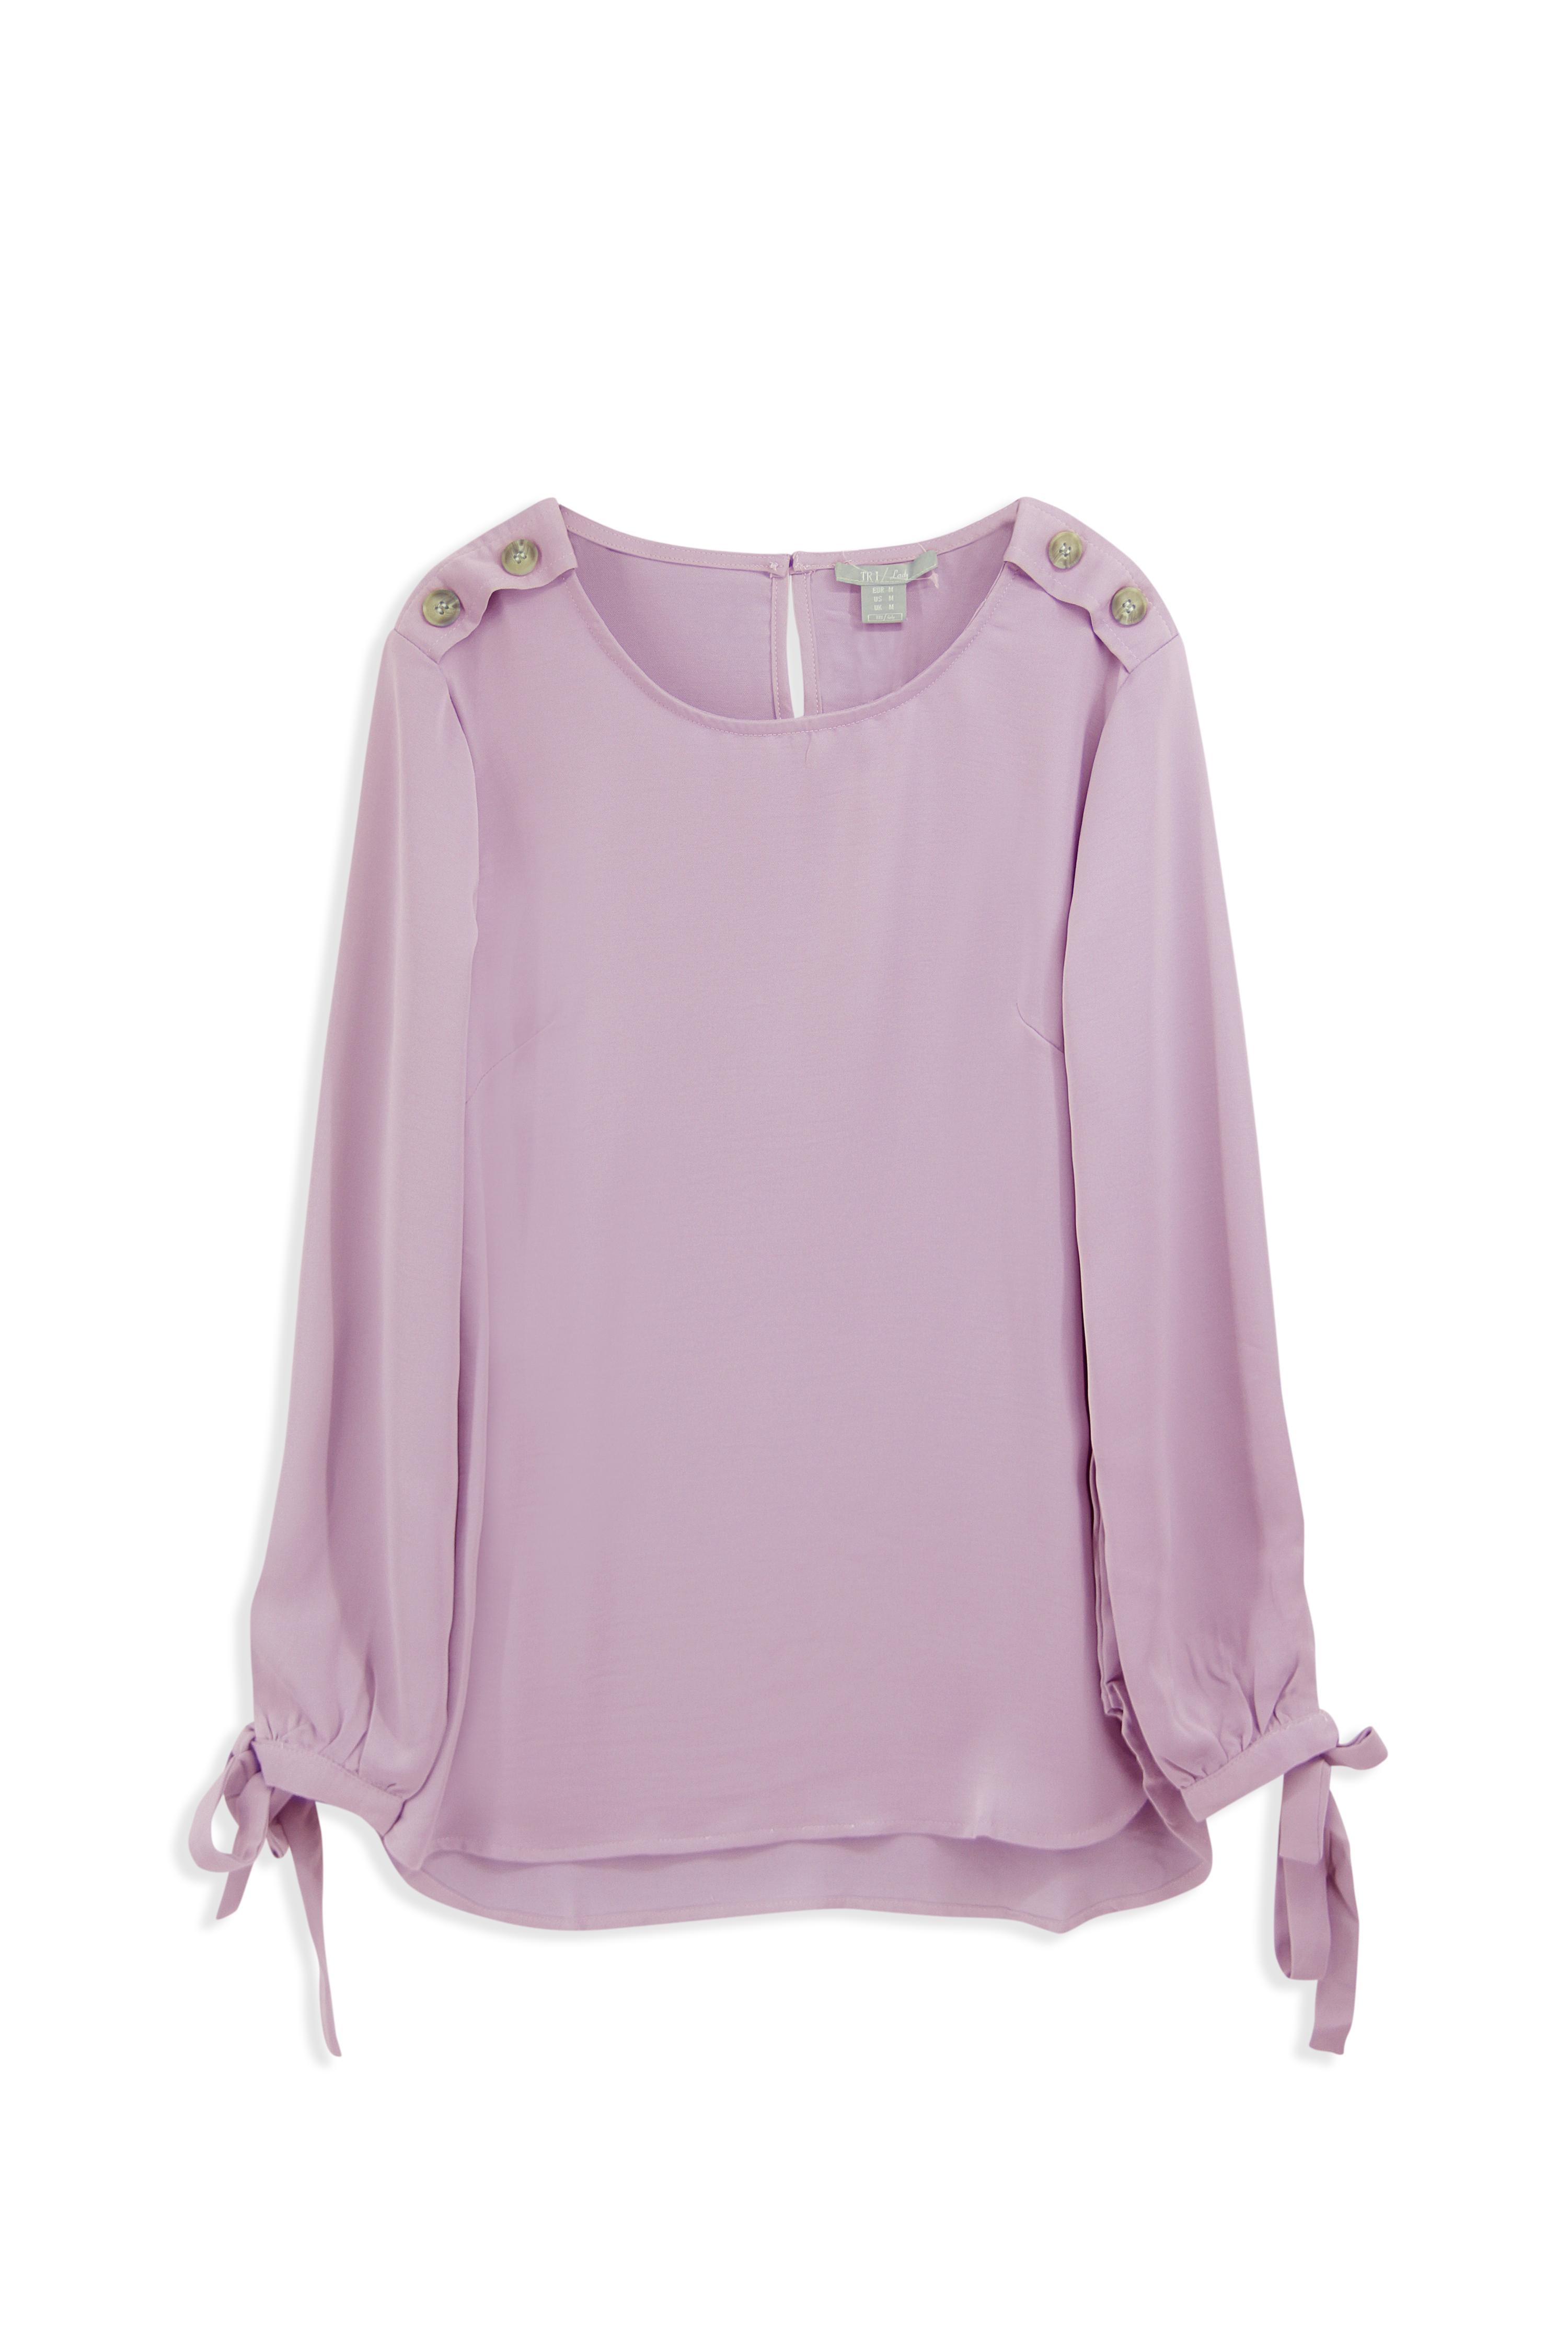 Lady Blouse Satin (LBS-09002)